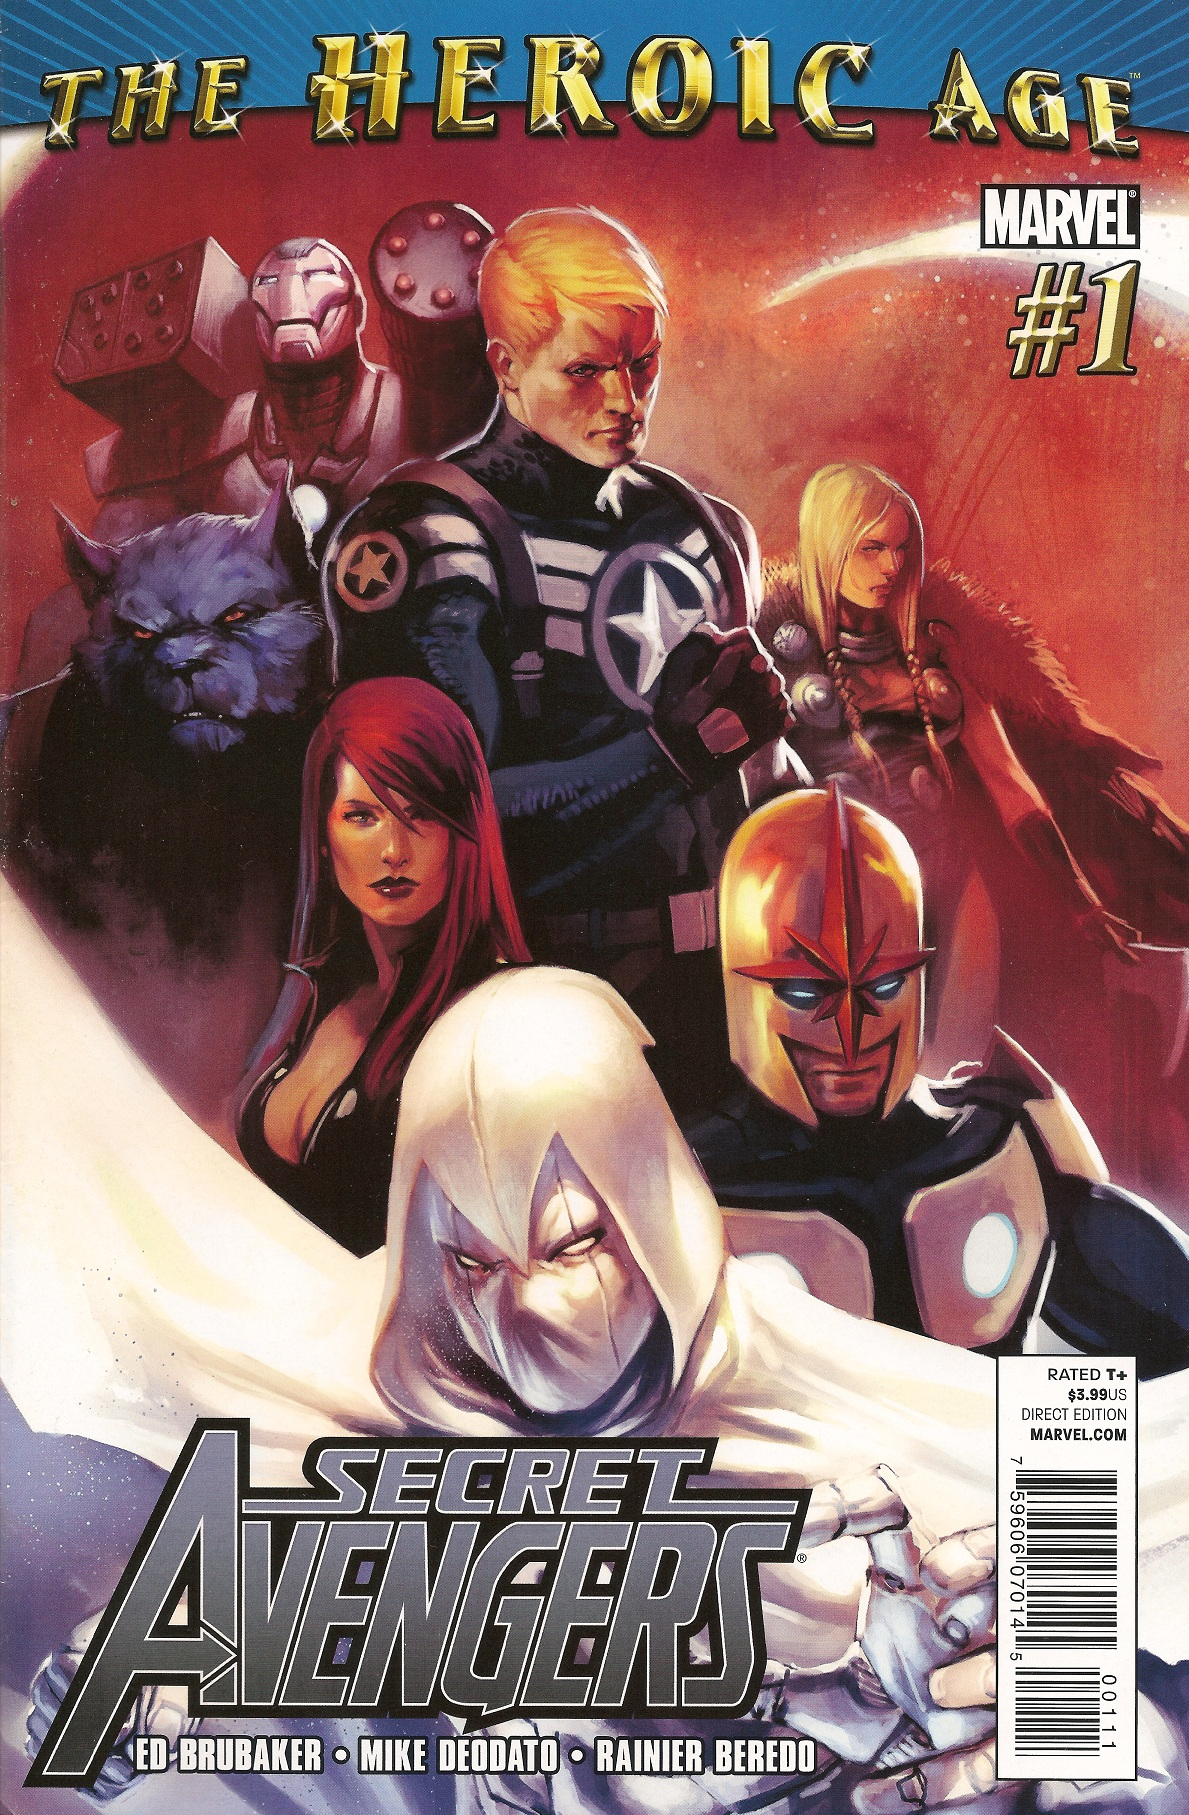 http://img3.wikia.nocookie.net/__cb20100527025926/marveldatabase/images/7/7a/Secret_Avengers_Vol_1_1.jpg